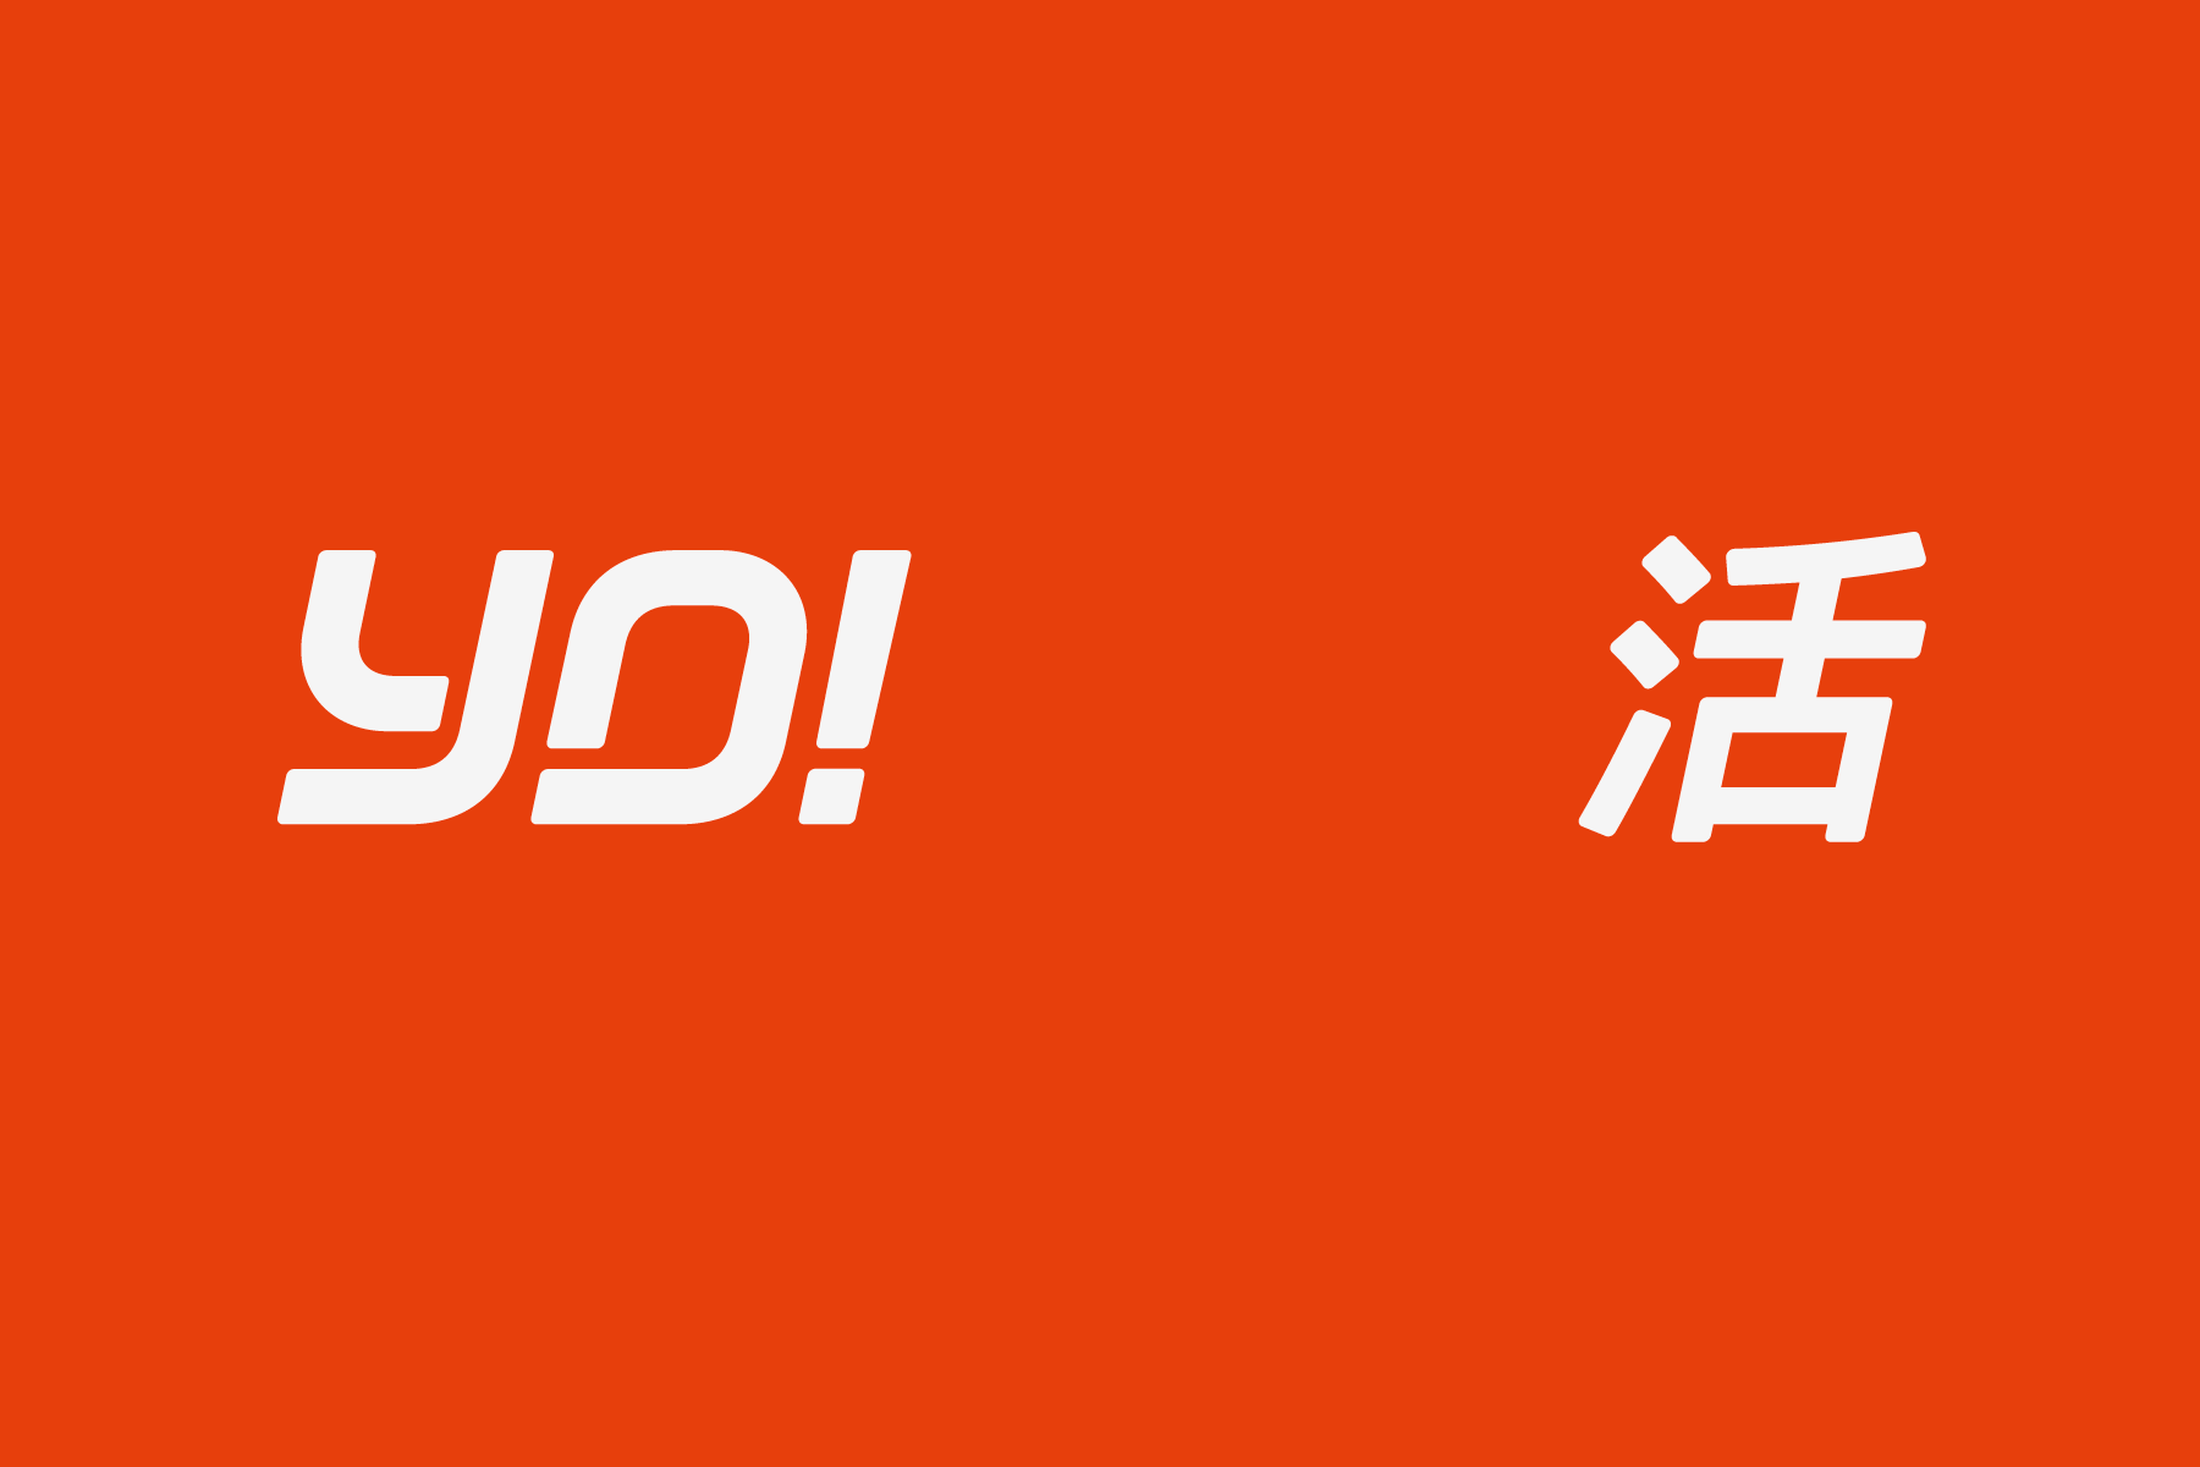 The addition of a kanji character to the logo adds an authentic Japanese flavour.